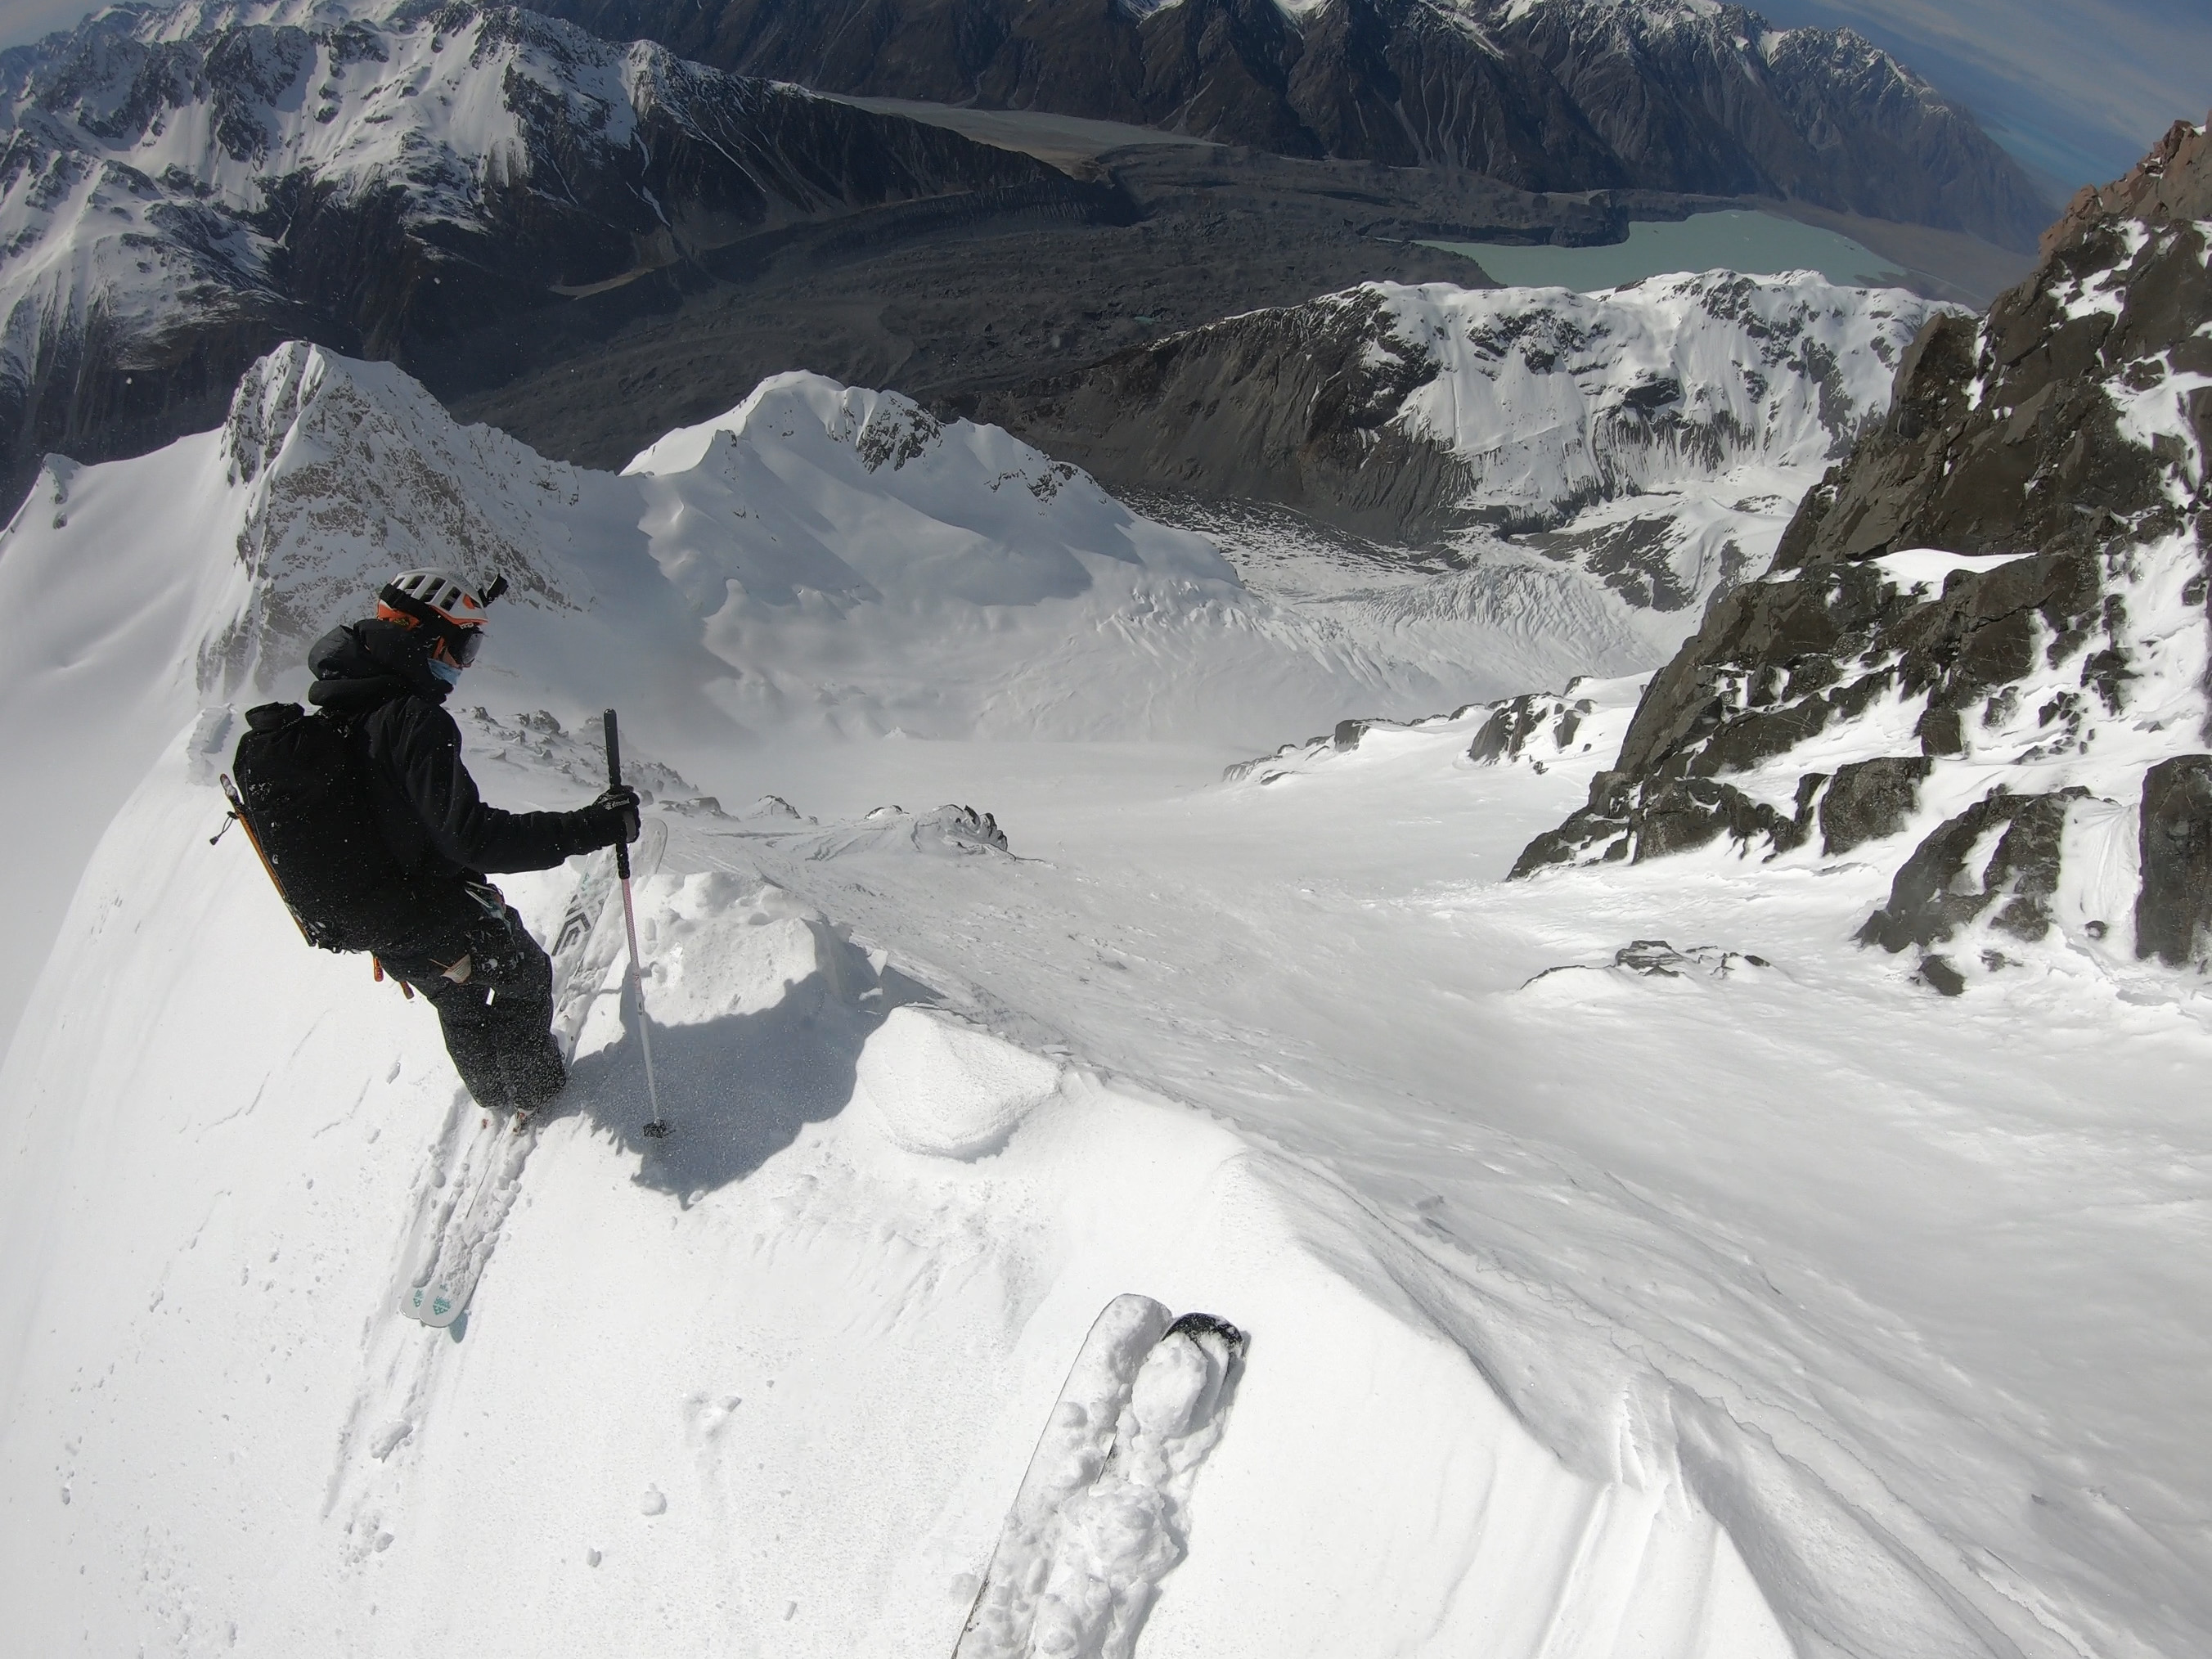 Ross HeDave Searle POV of Ross Hewitt skiing First Descent on Caroline Face of Aoraki Mount Cook NZ